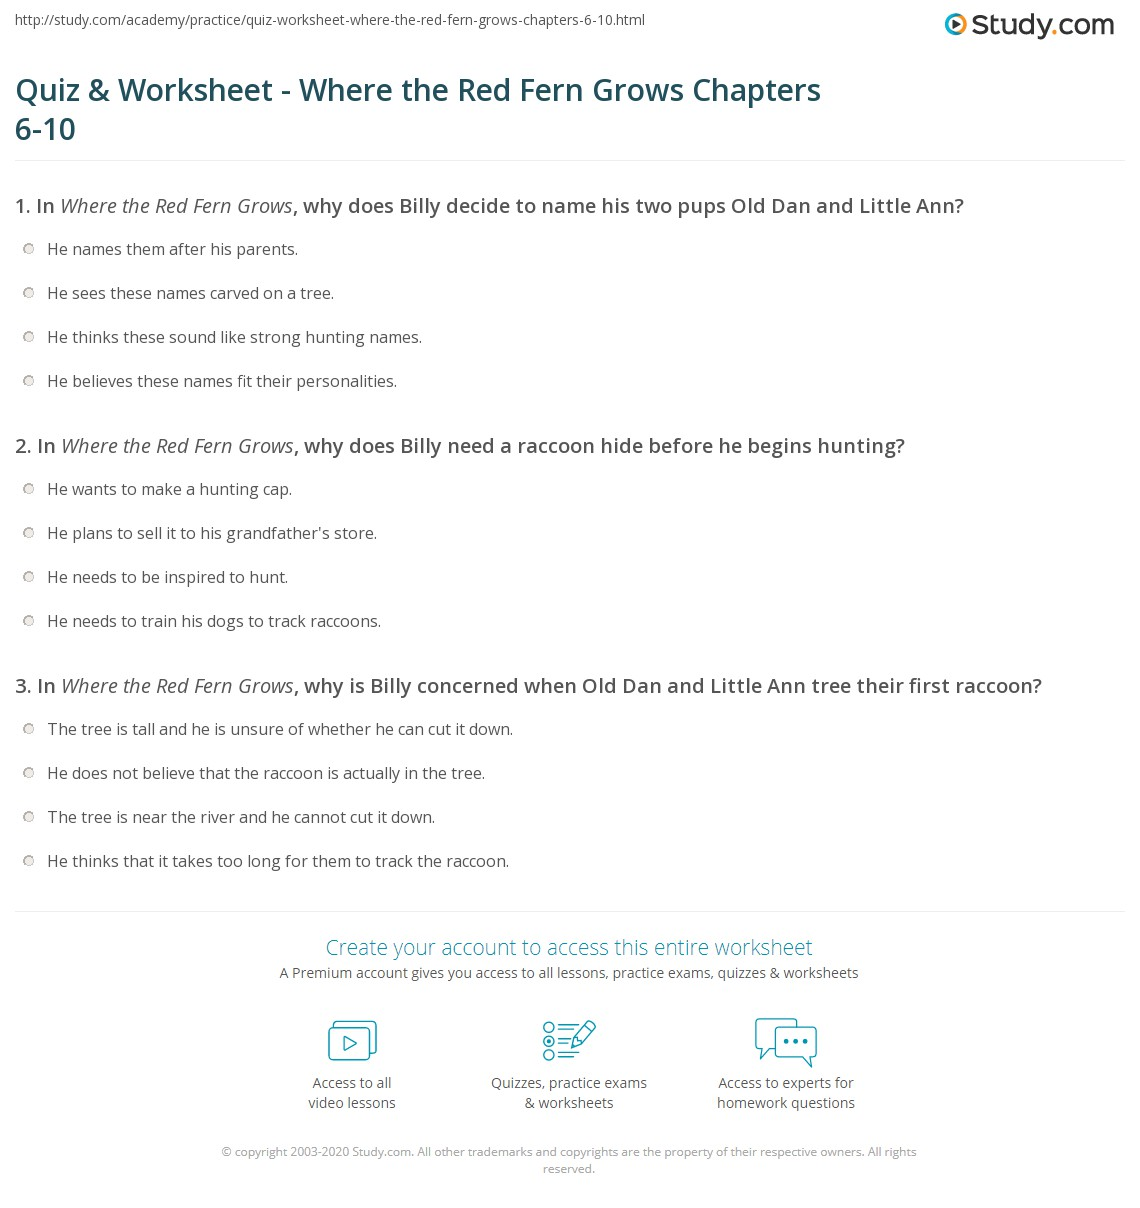 quiz worksheet where the red fern grows chapters 6 10. Black Bedroom Furniture Sets. Home Design Ideas